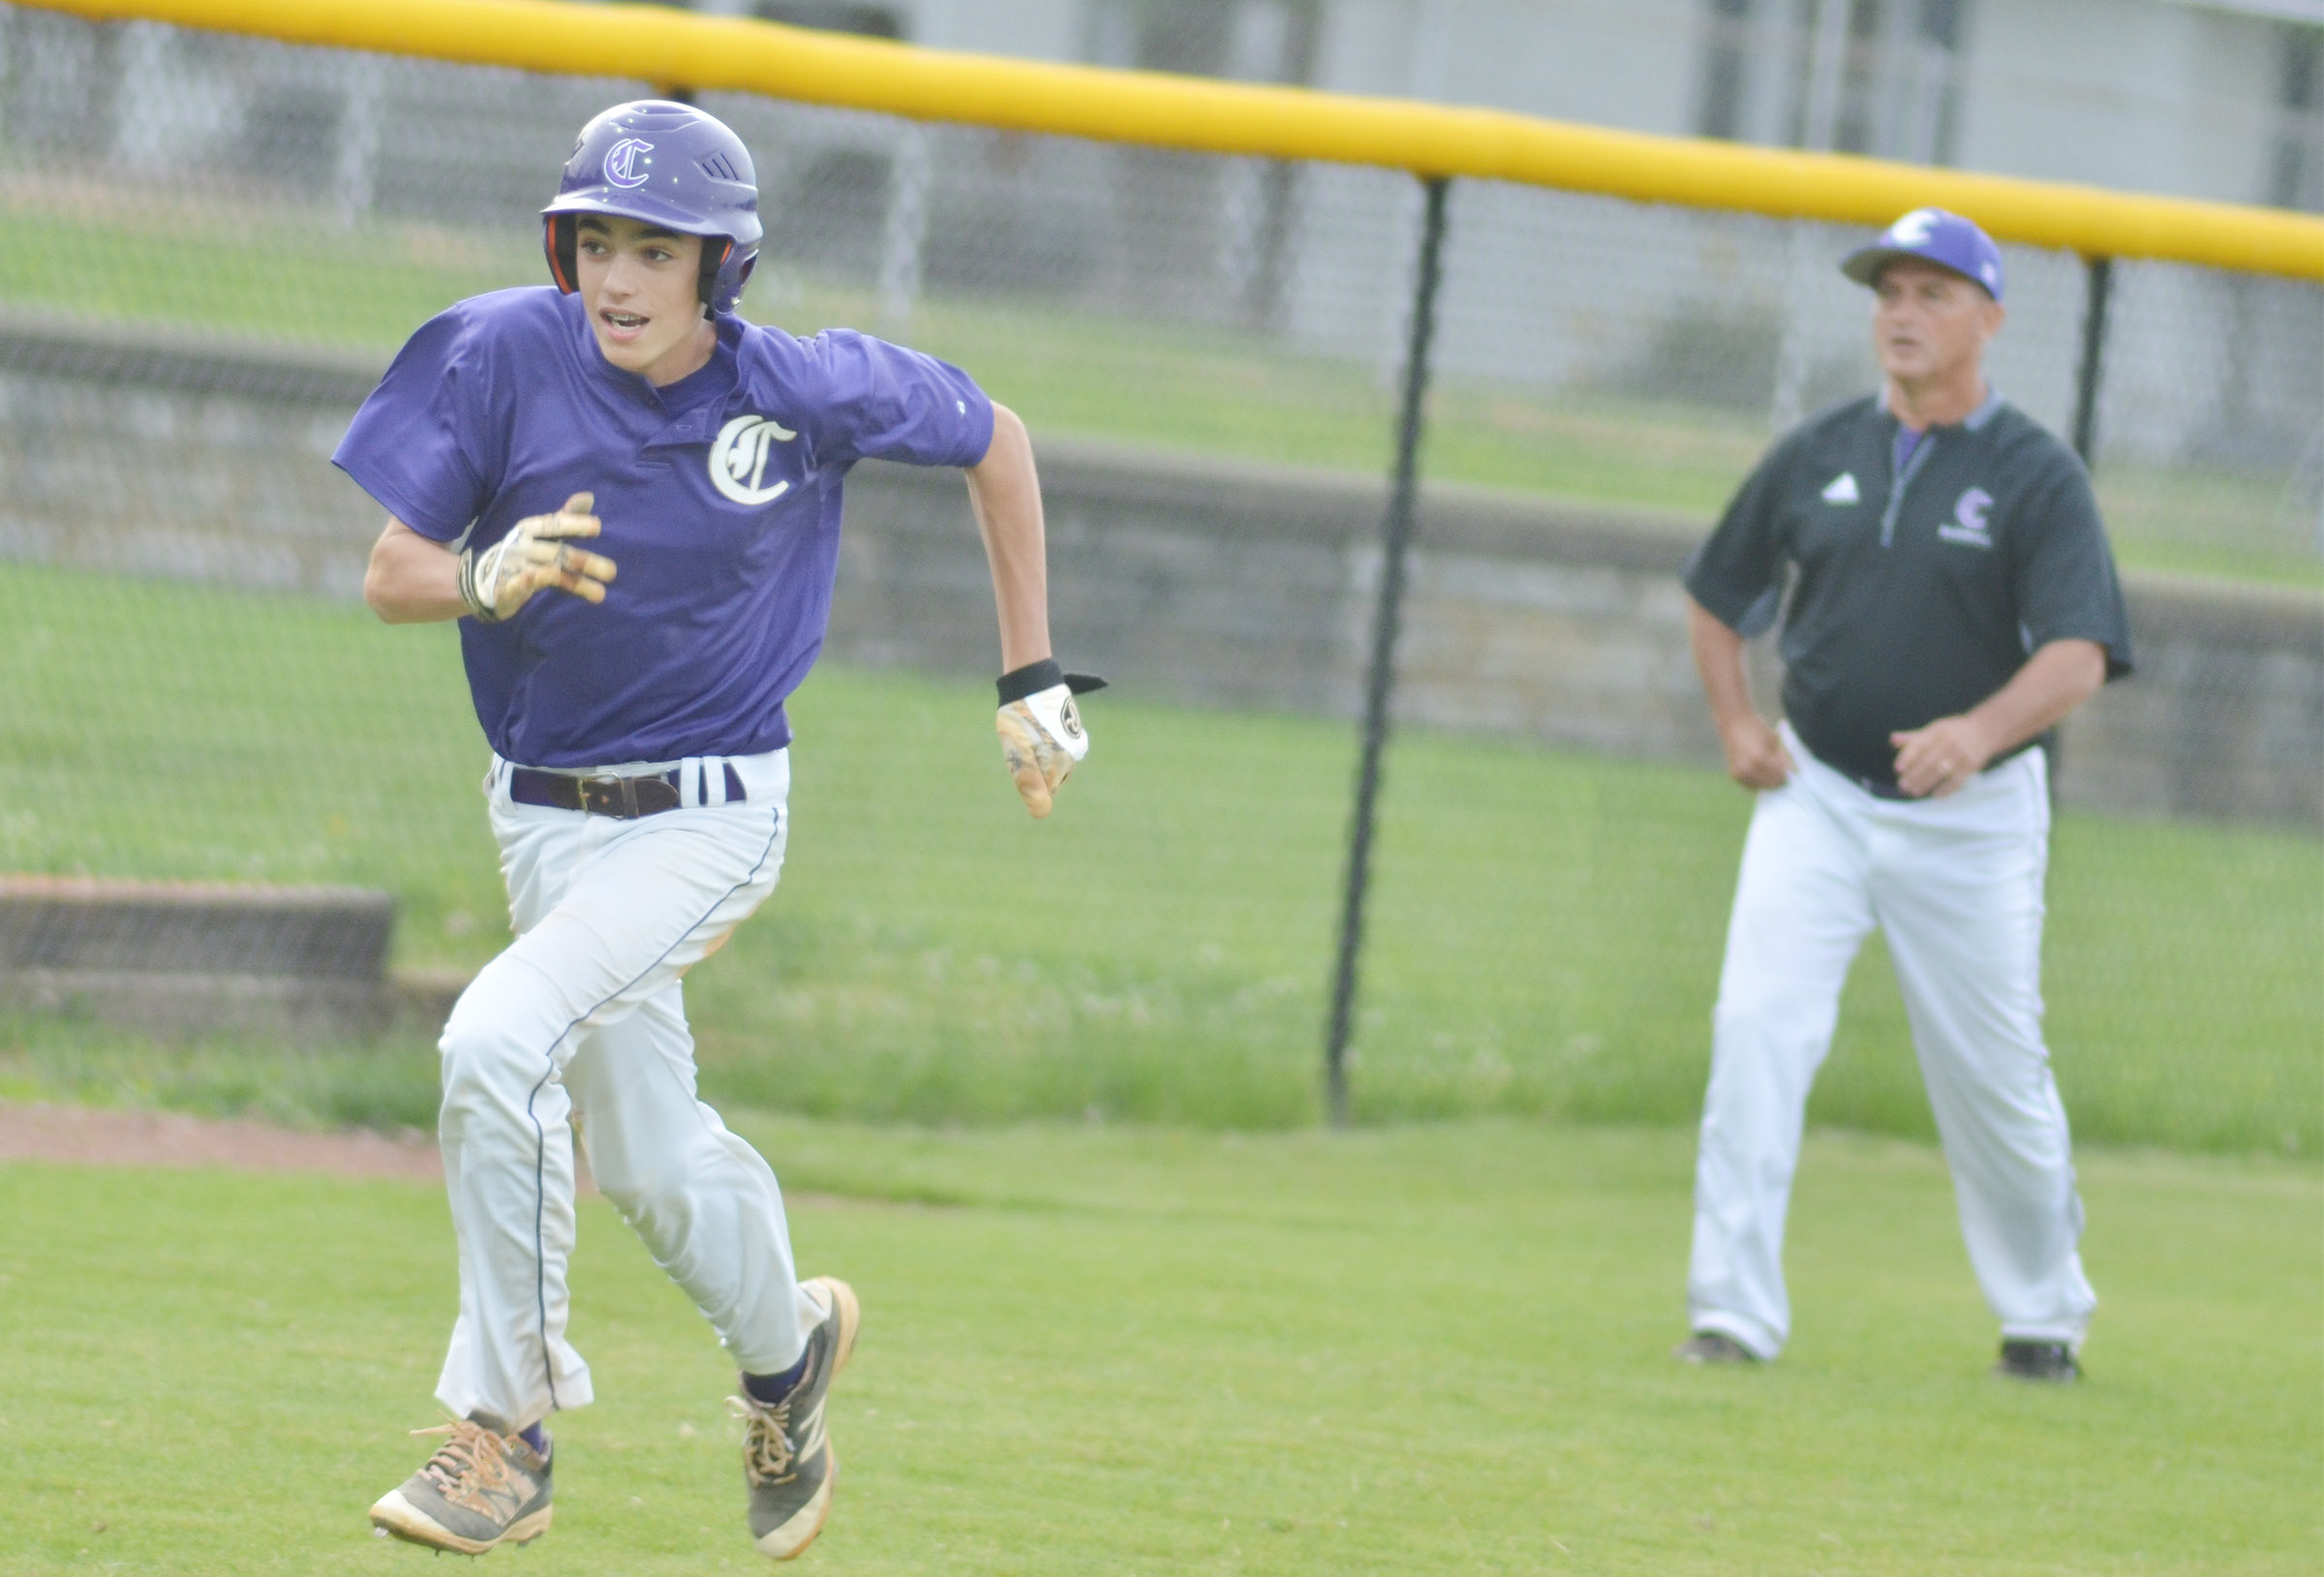 CMS eighth-grader Kameron Smith runs home.